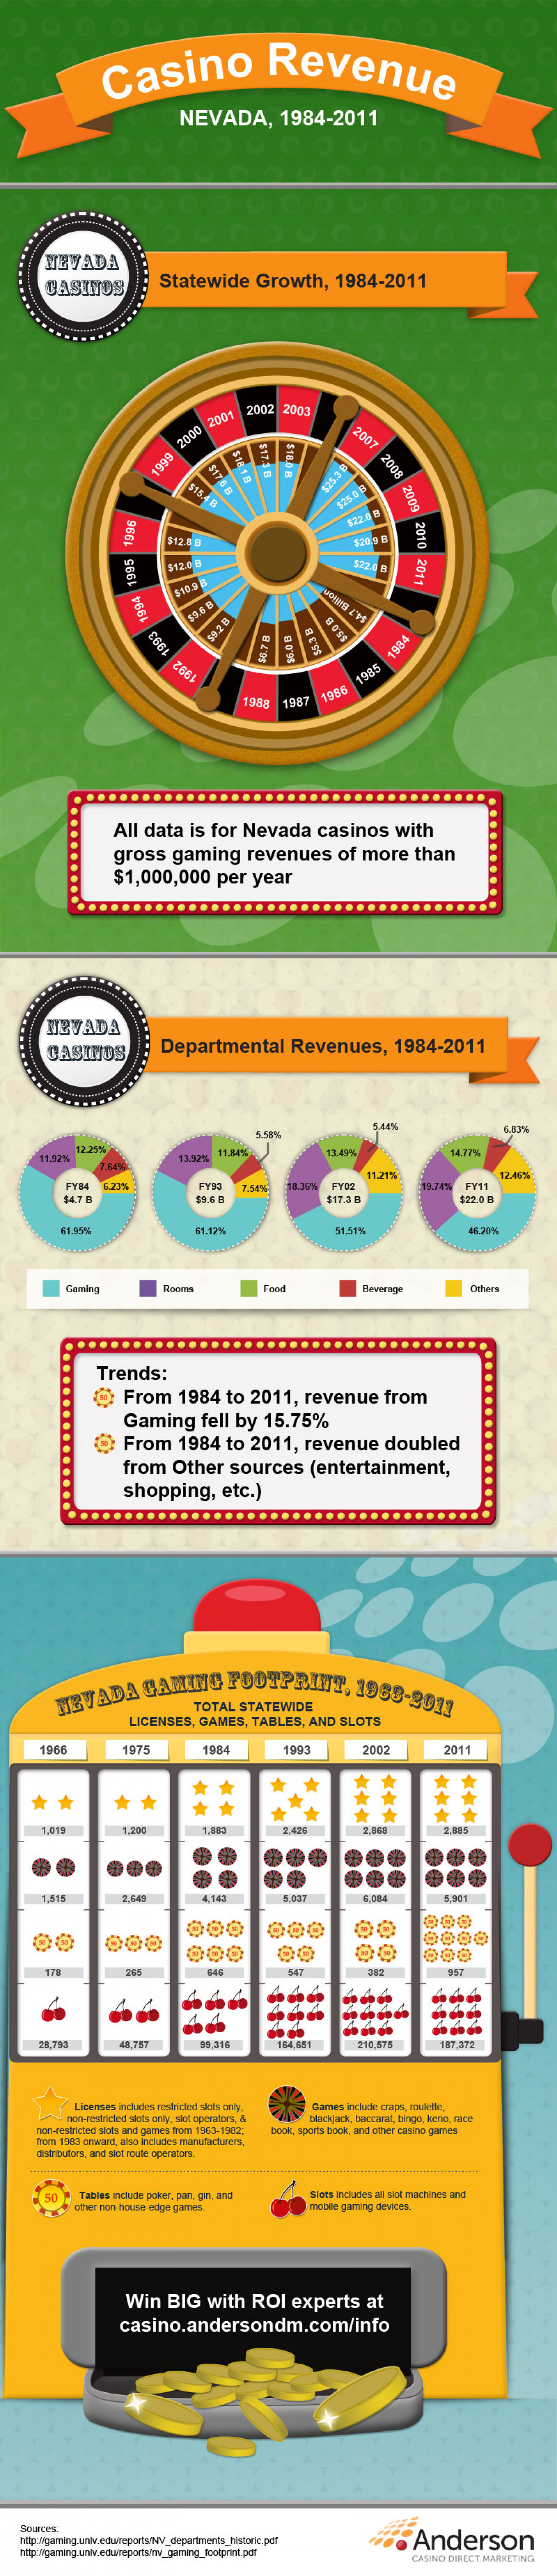 INFOGRAPHIC: CASINO REVENUE - NEVADA CASINOS - 1984 TO 2011 Infographic